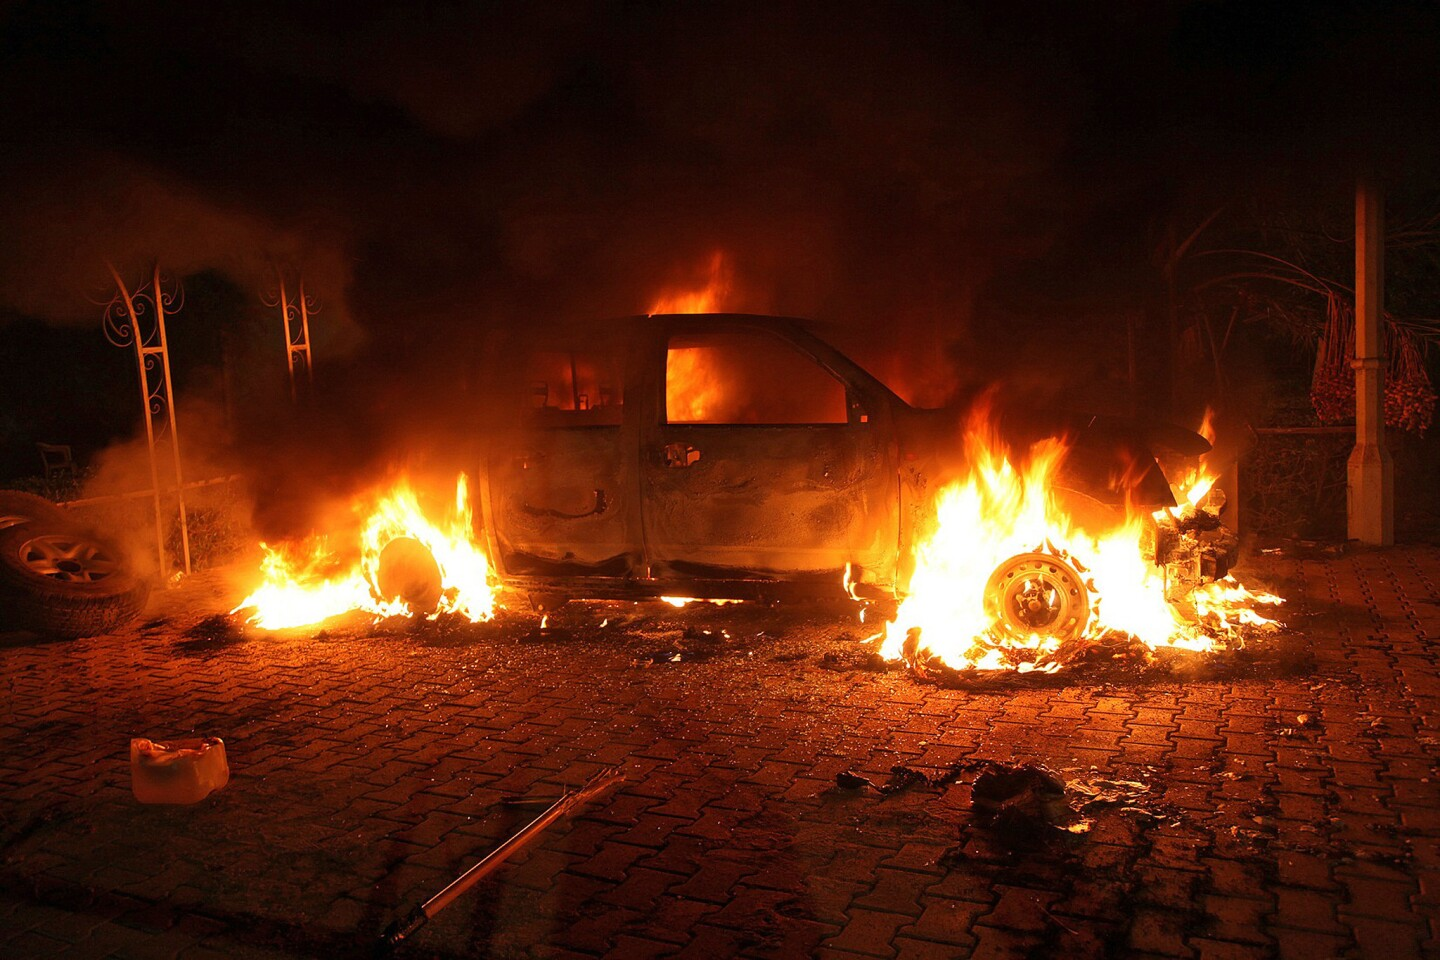 Armed assailants attacked the U.S. consulate in Benghazi, Libya, and set fire to the building.